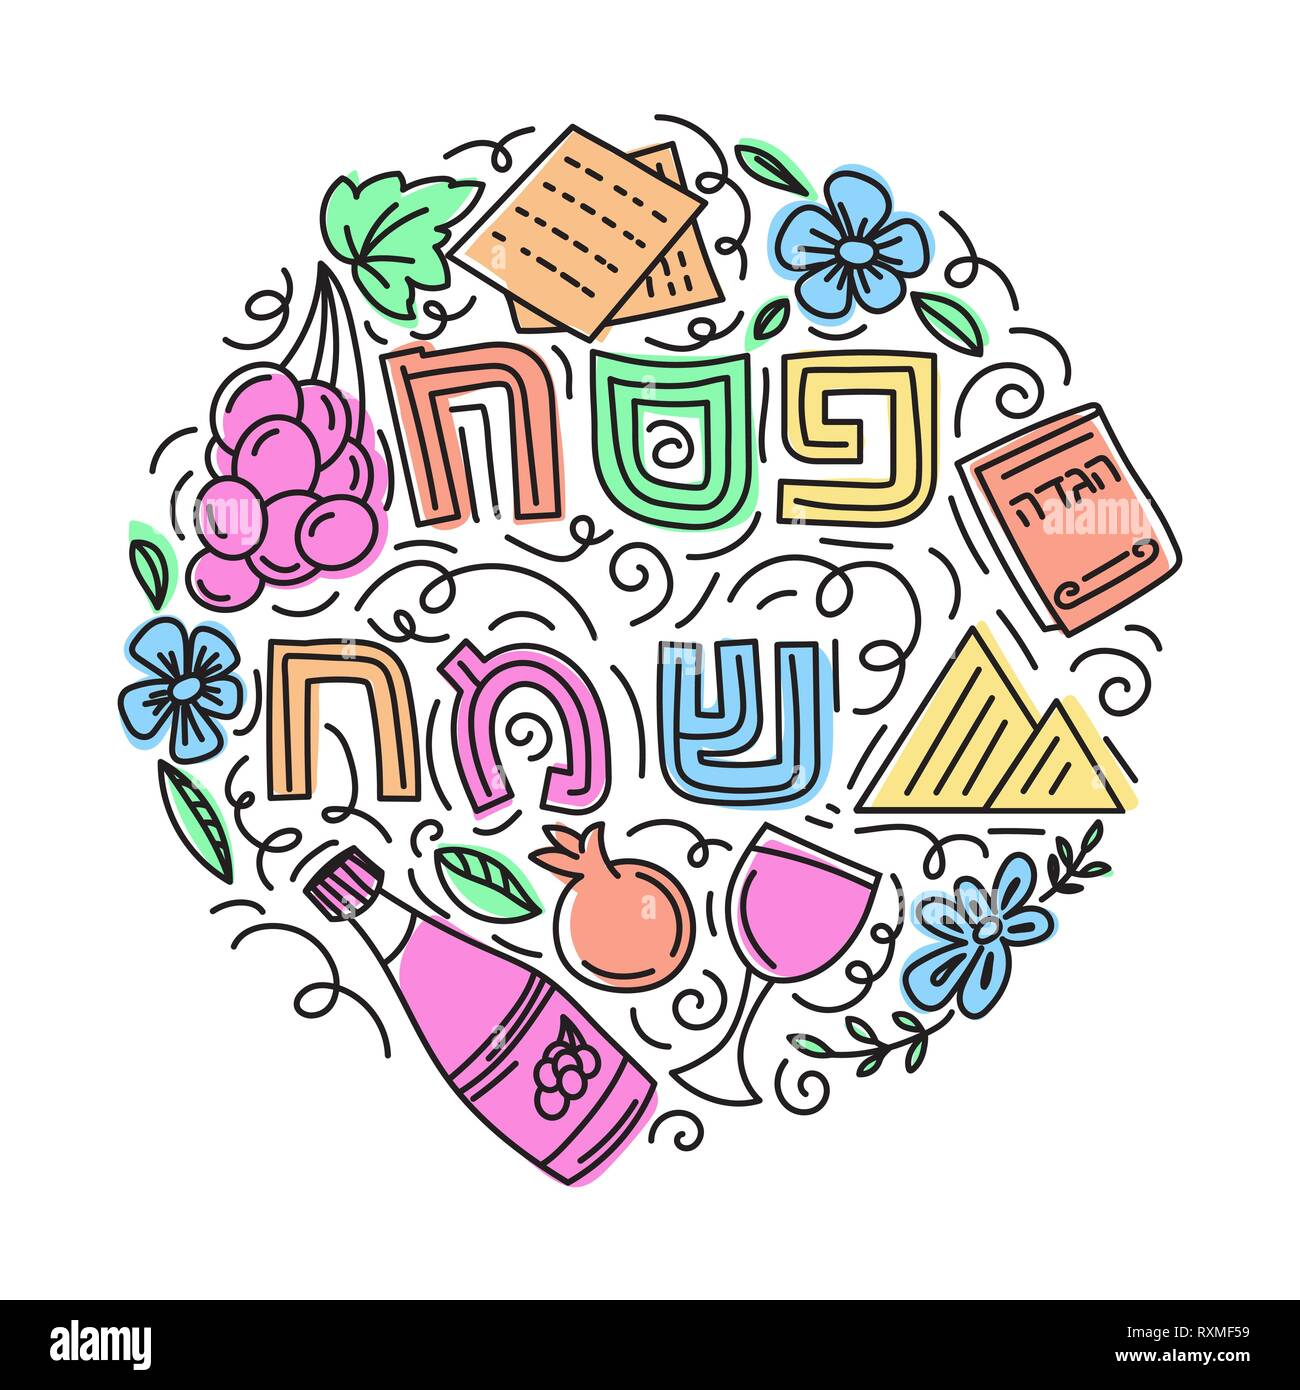 Passover greeting card (Jewish holiday Pesach). Hebrew text: happy Passover. Line art vector illustration. Doodle style. Isolated on white background. - Stock Image